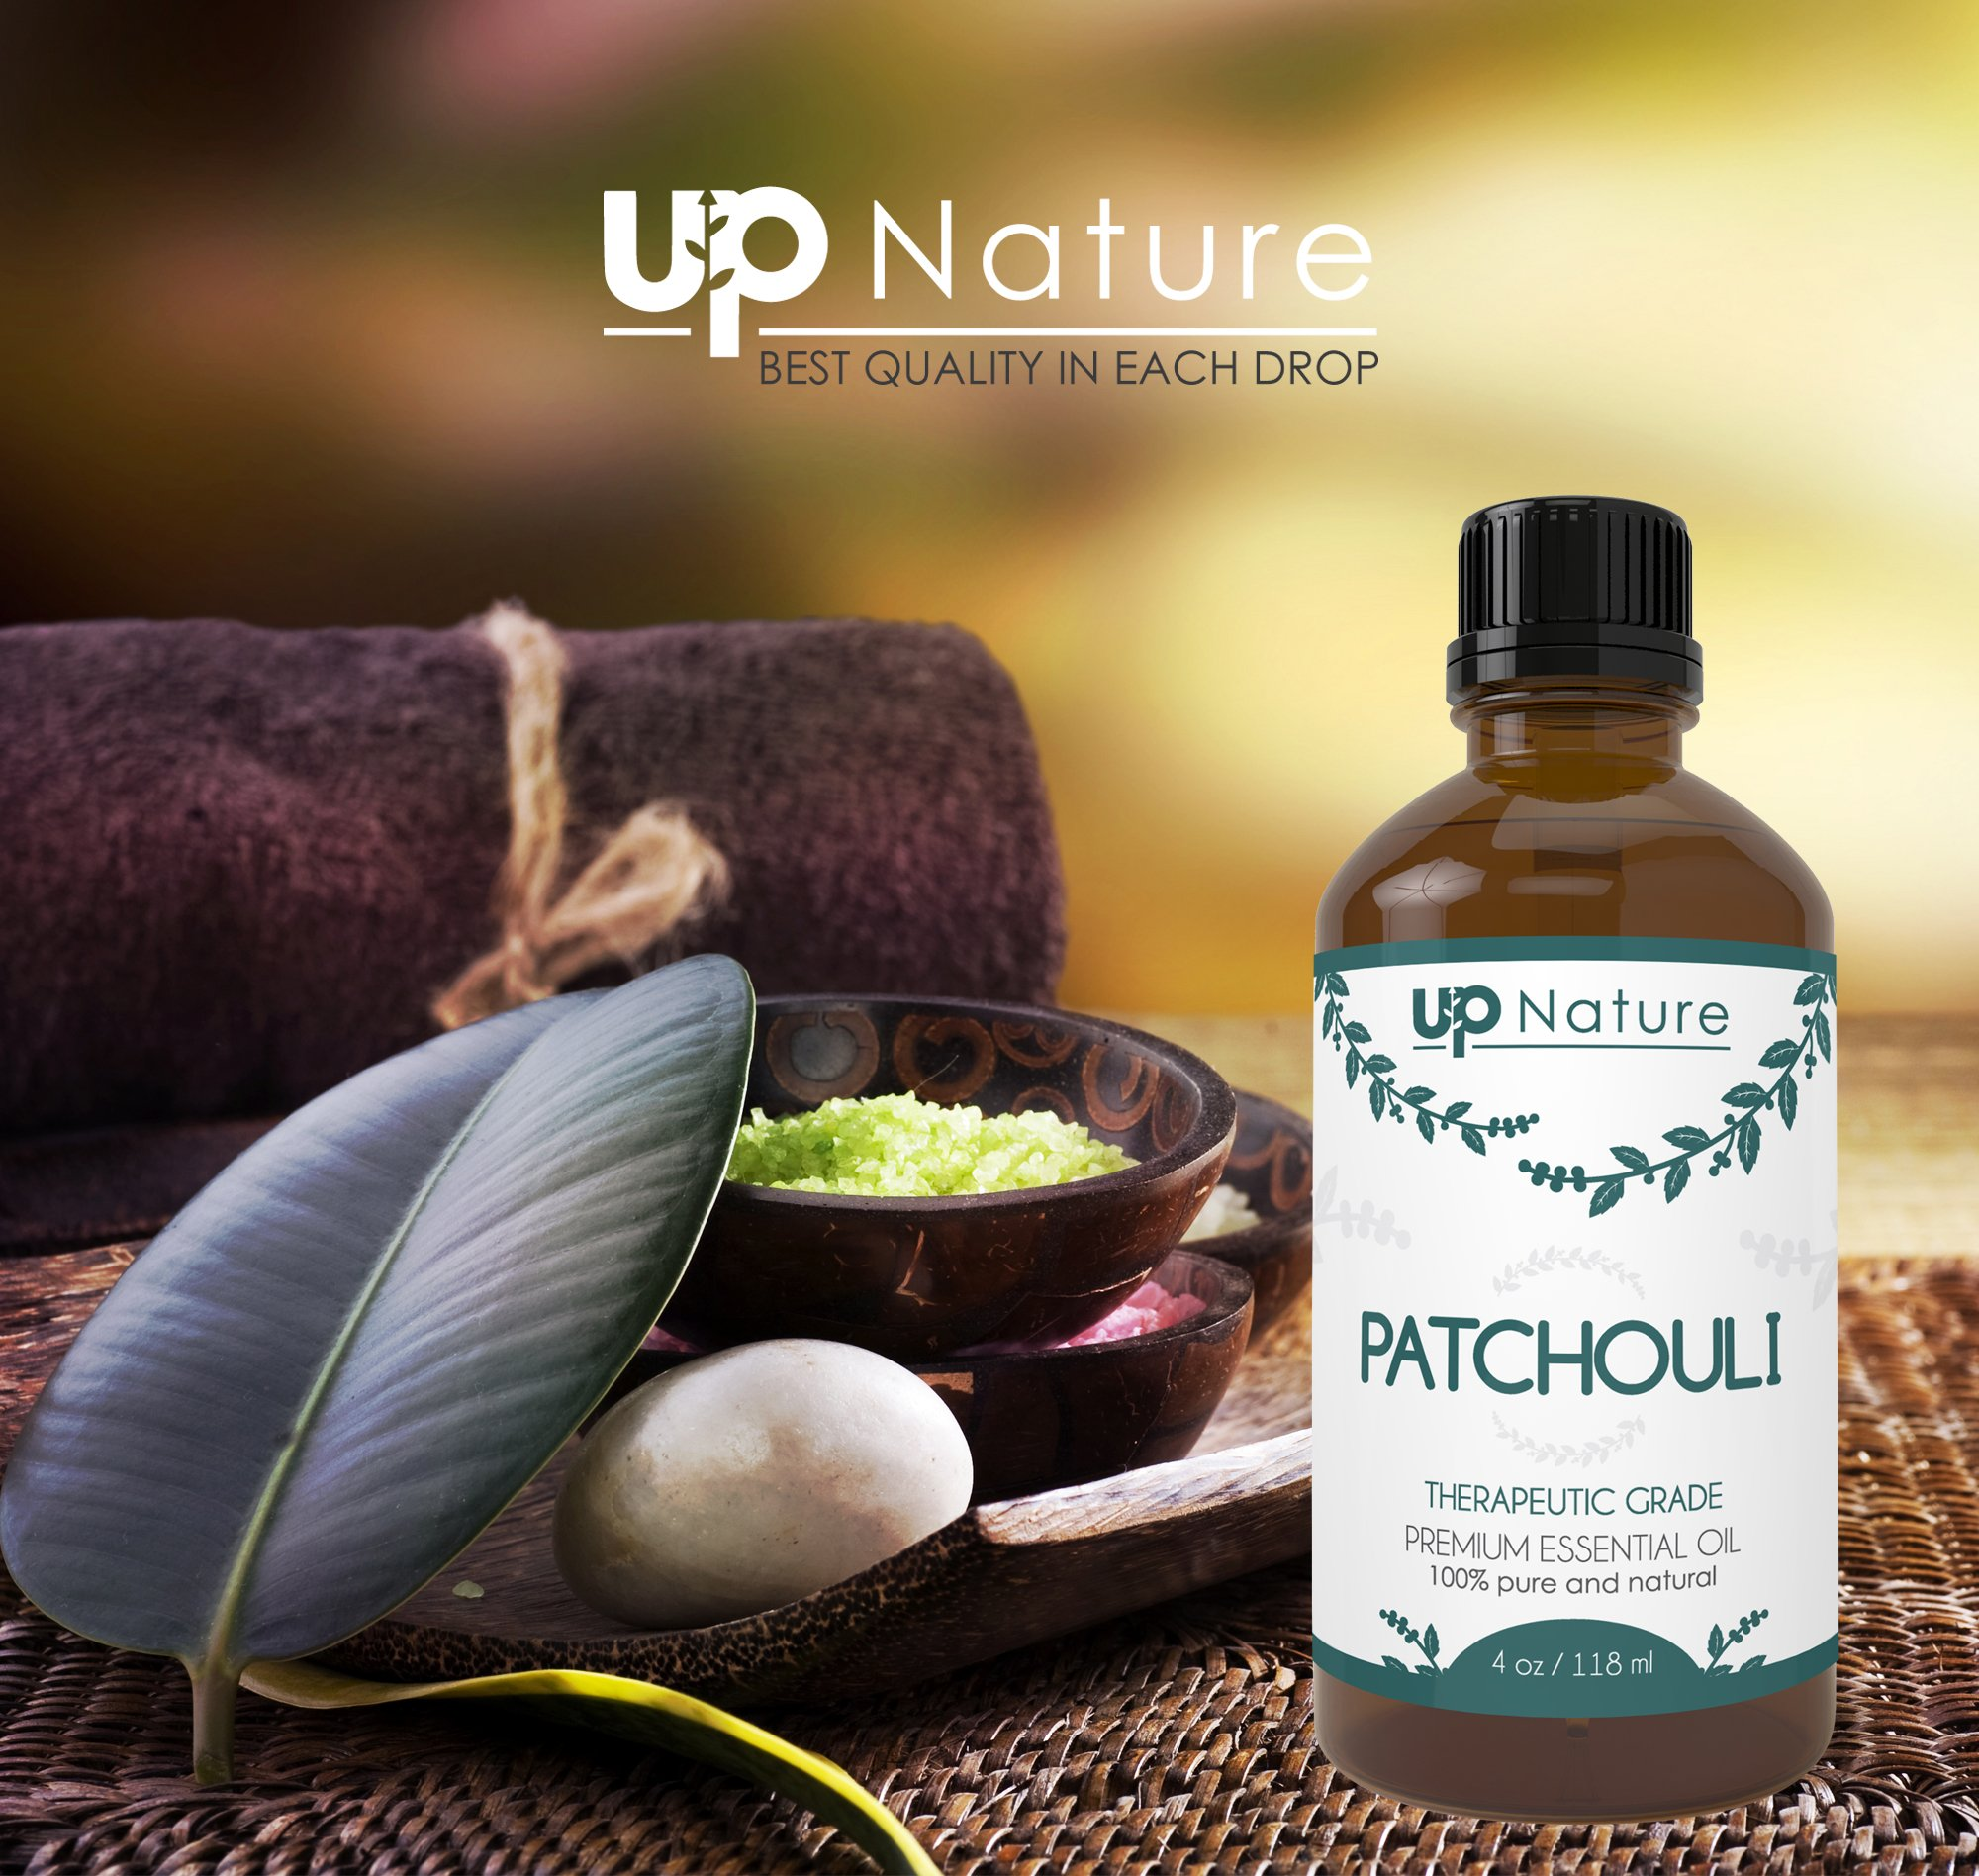 UpNature The Best Patchouli Essential Oil 4 OZ - Pure Unrefined GMO Free Premium Quality - Use As Perfume - For Soap & Spray Making by UpNature (Image #4)